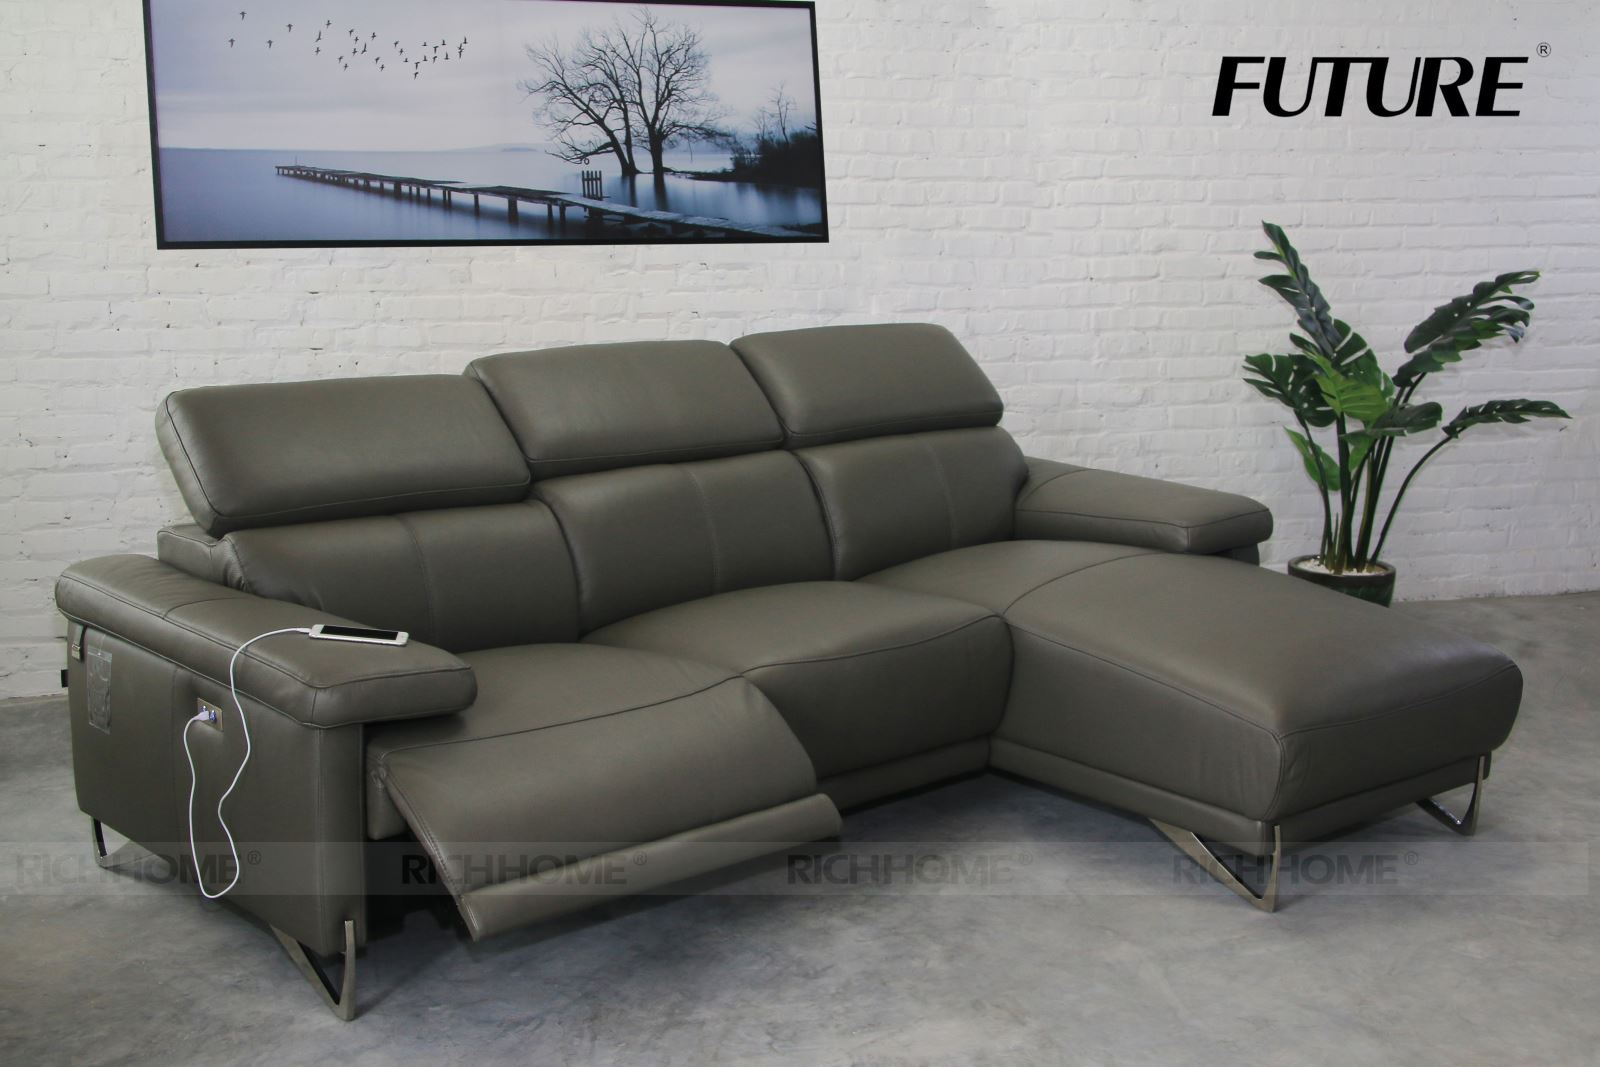 SOFA DA BÒ - FUTURE MODEL 7067 (3L)